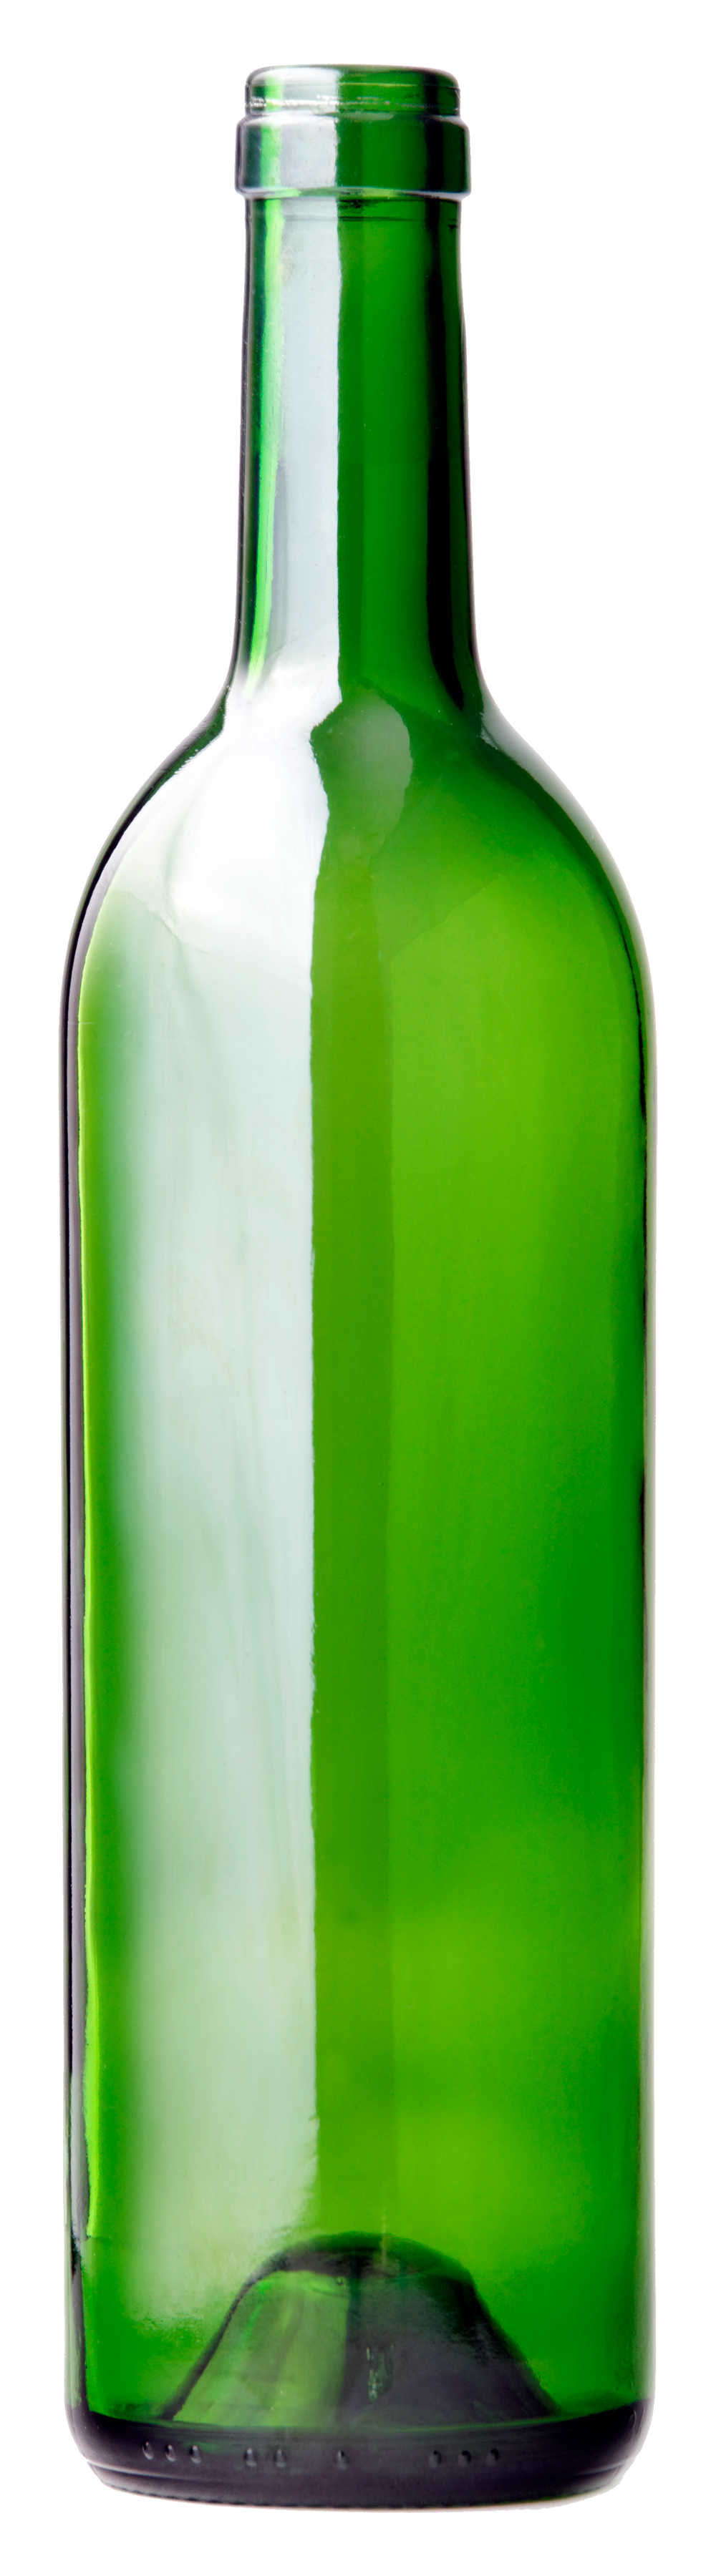 Glass green bottle PNG image - Bottle PNG